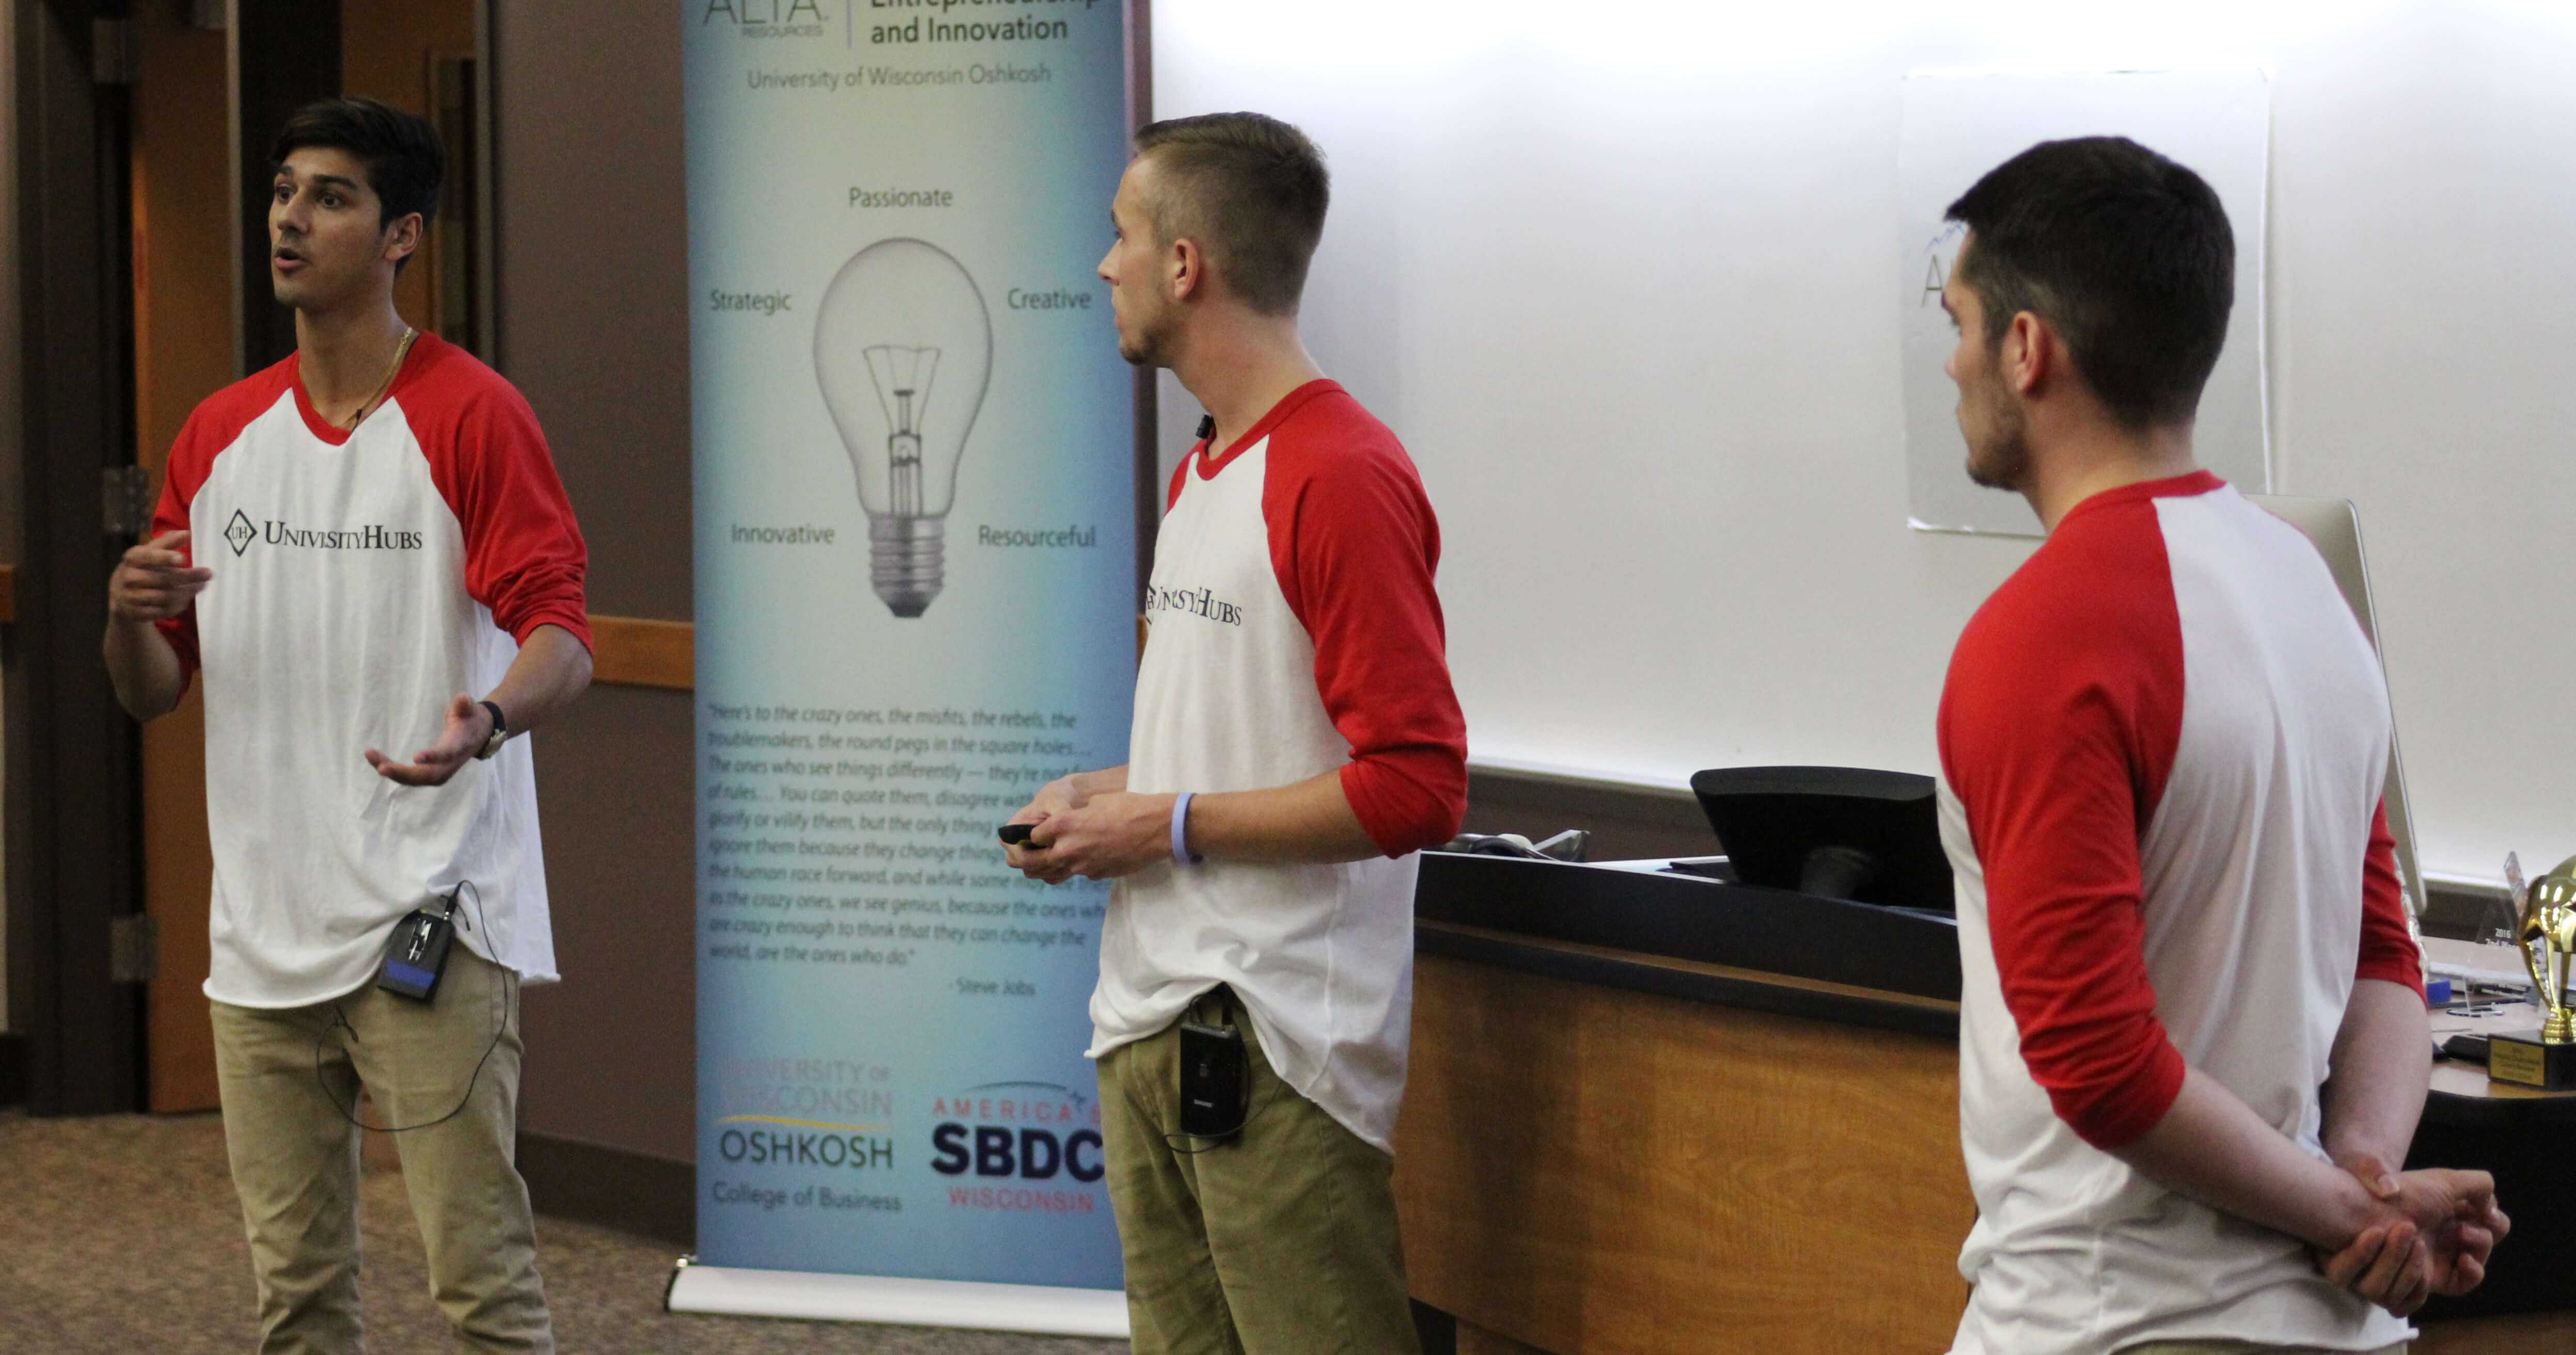 Culver's business model contest awards over $30,000 to students